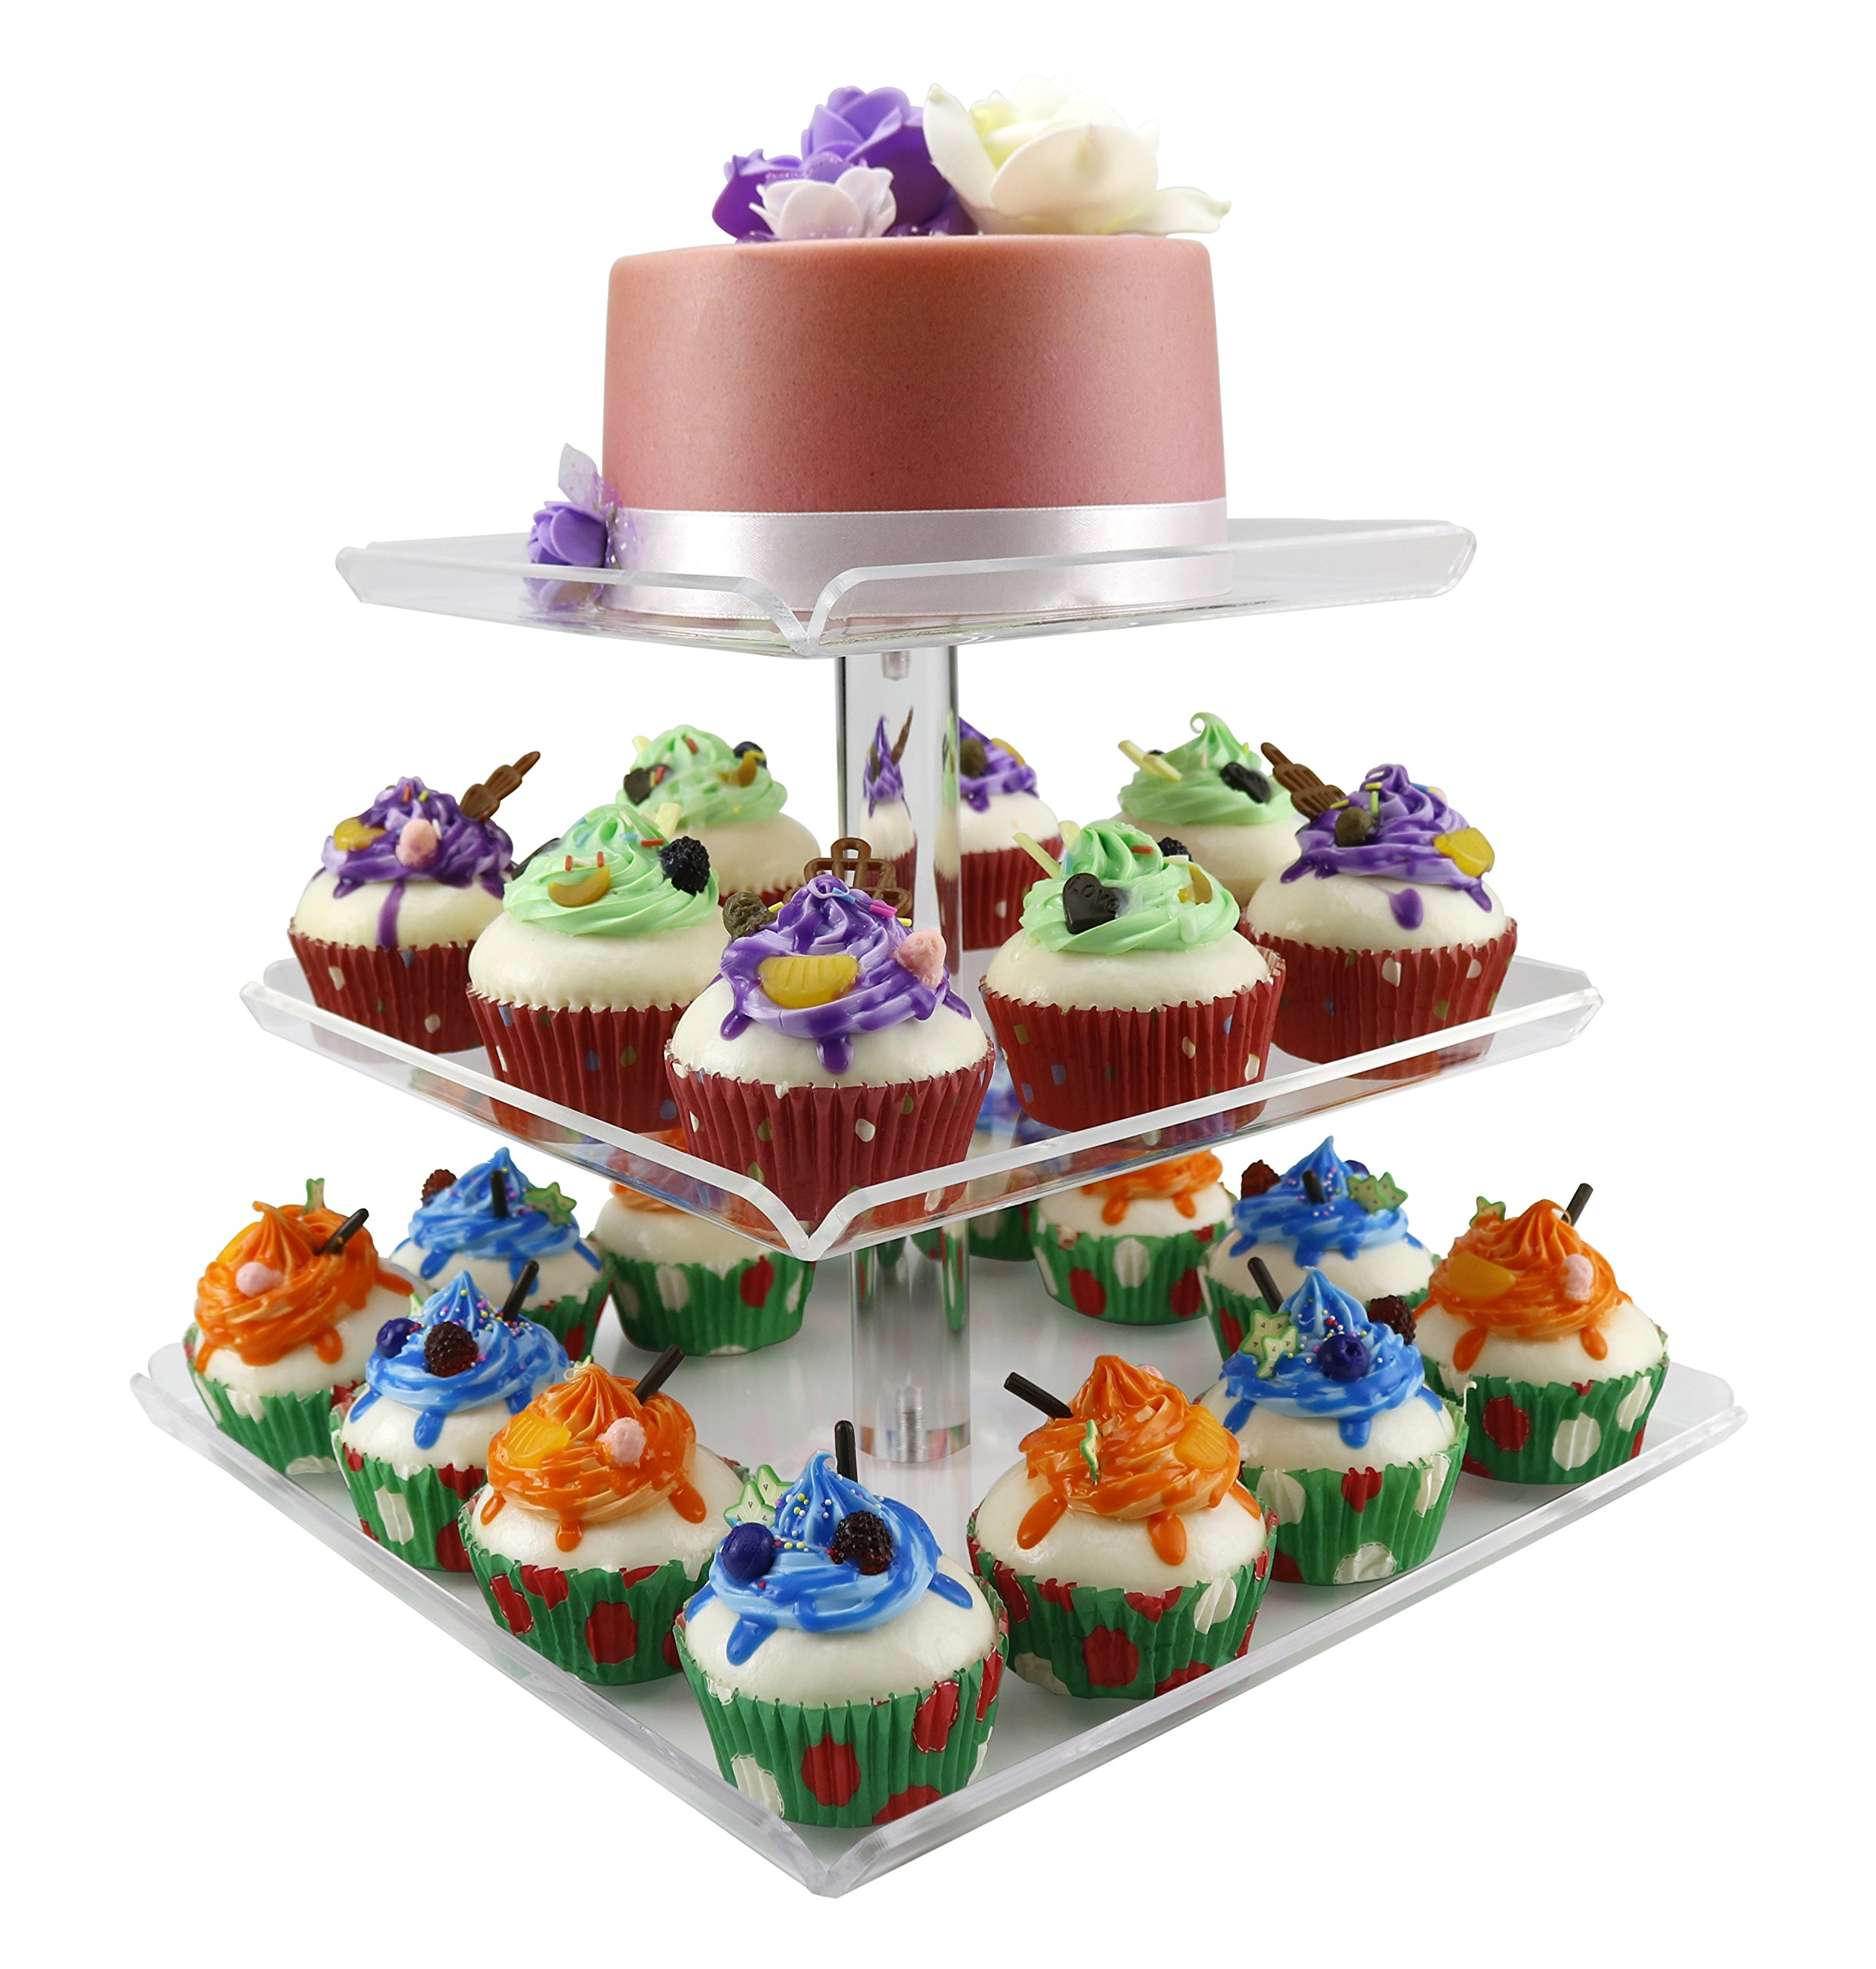 3 Tiers Large Acrylic Cupcake Stands, Serving Tray with Borders, Tiered Square Cake Stand Wedding Tower, Party Dessert Display Holder Multi-Function 3 pcs Separated Trays for Parties Fruit Displays